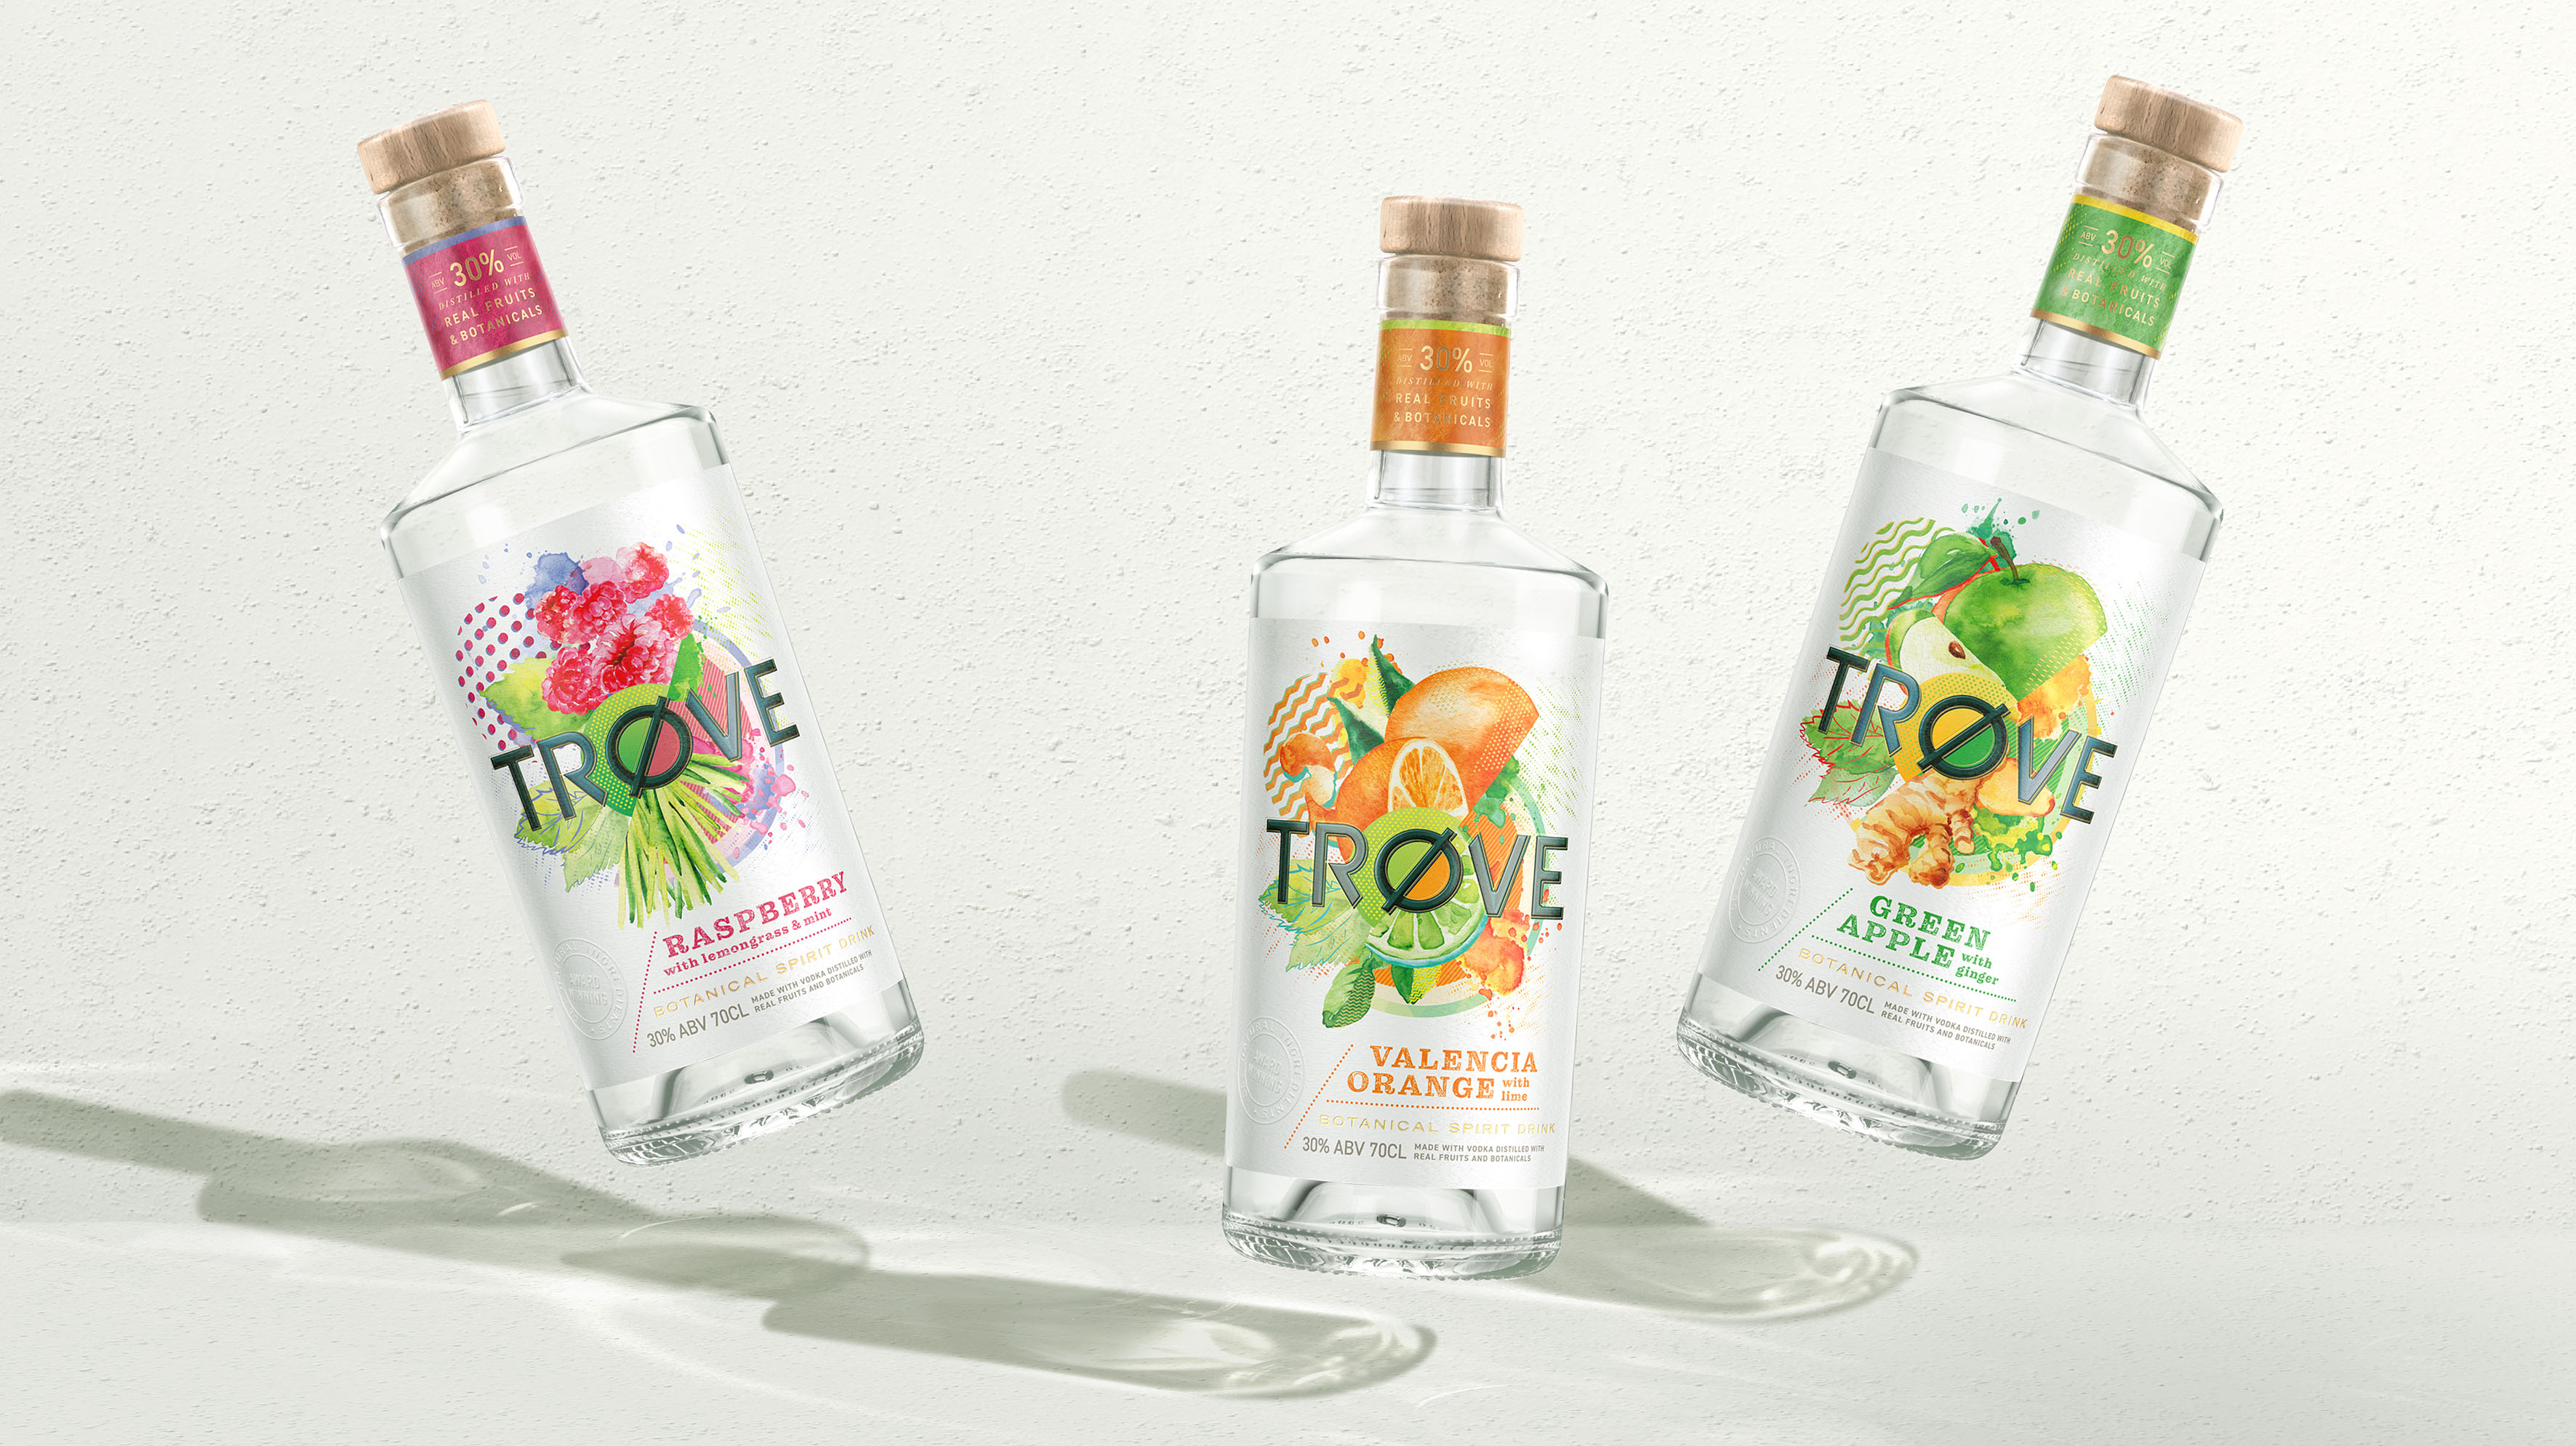 Trøve Low ABV Botanical Spirits Brand Creation by Butterfly Cannon